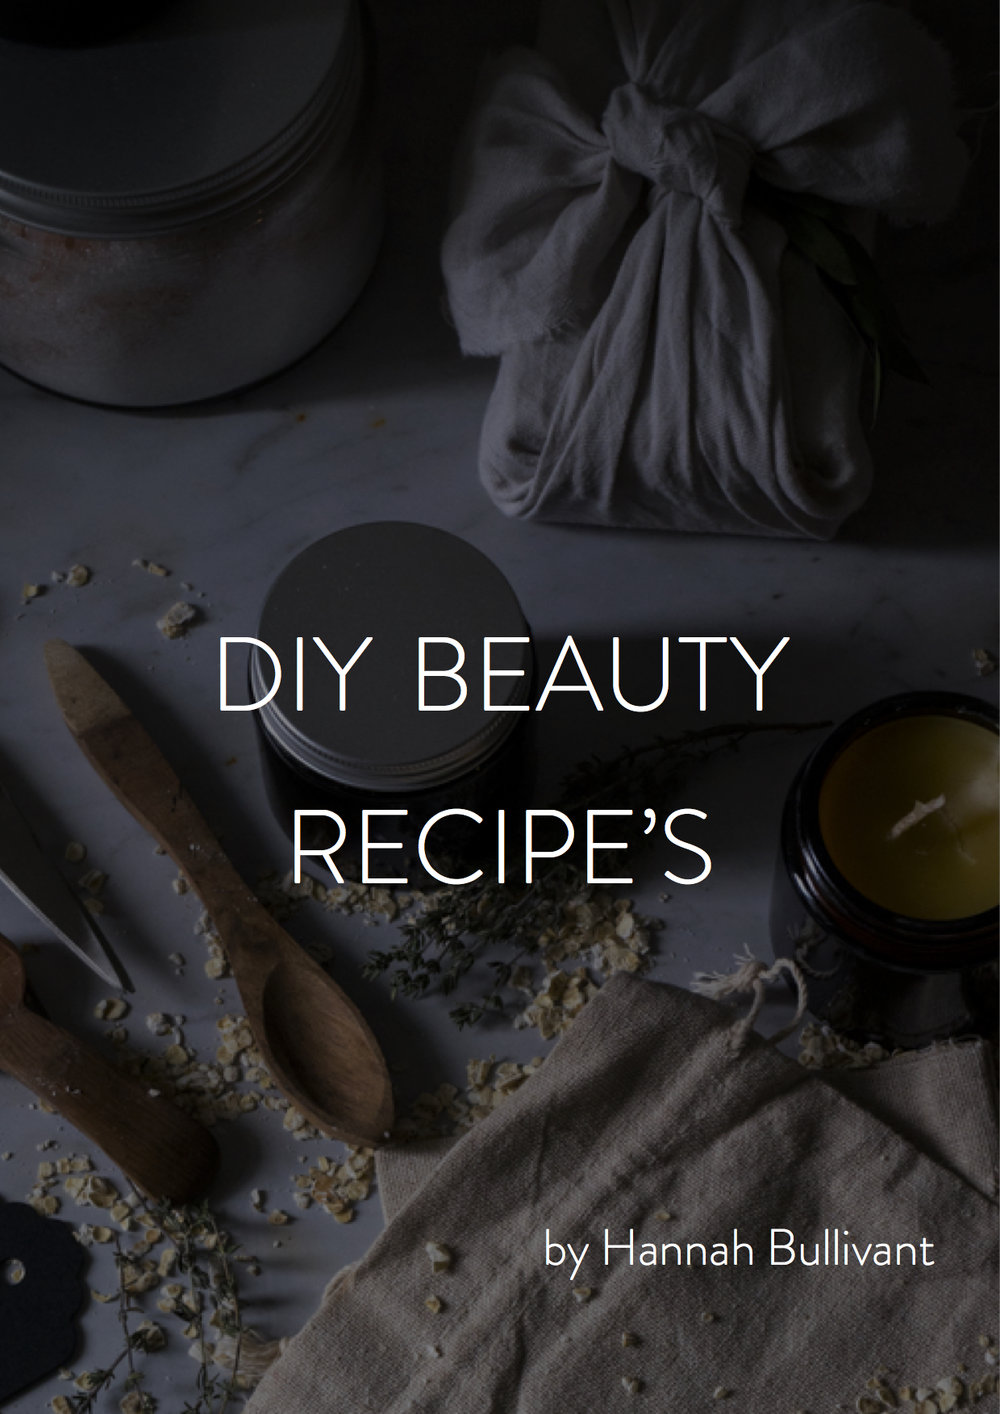 If you would like my DIY Beauty recipes, sign up below!